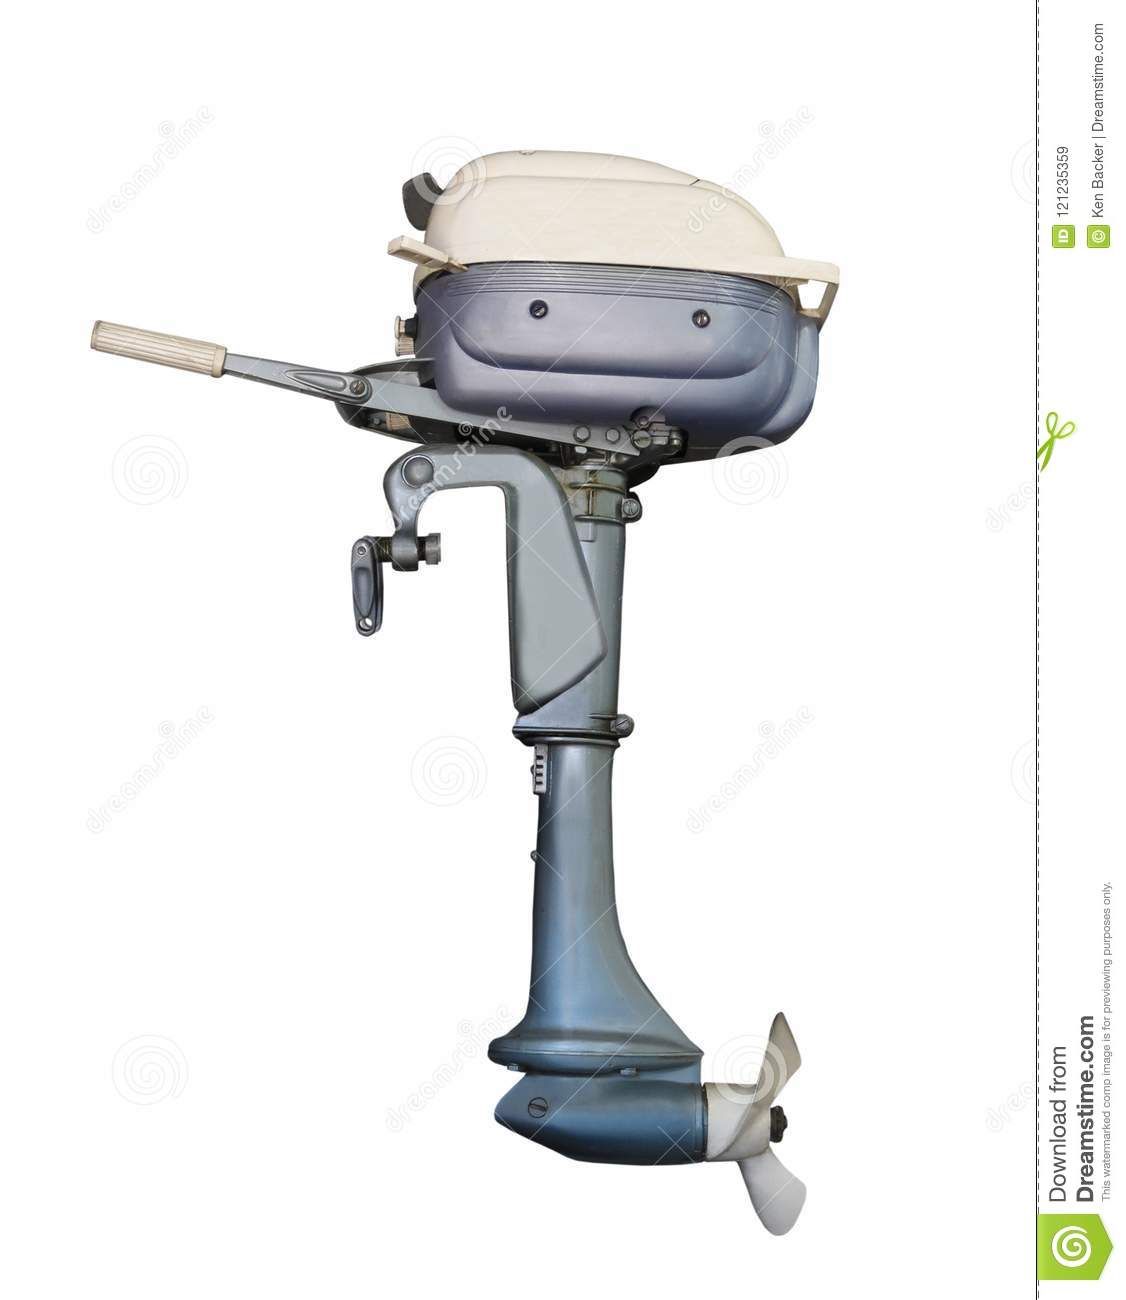 Old Outboard Motor For A Boat Isolated  Stock Image - Image of boat